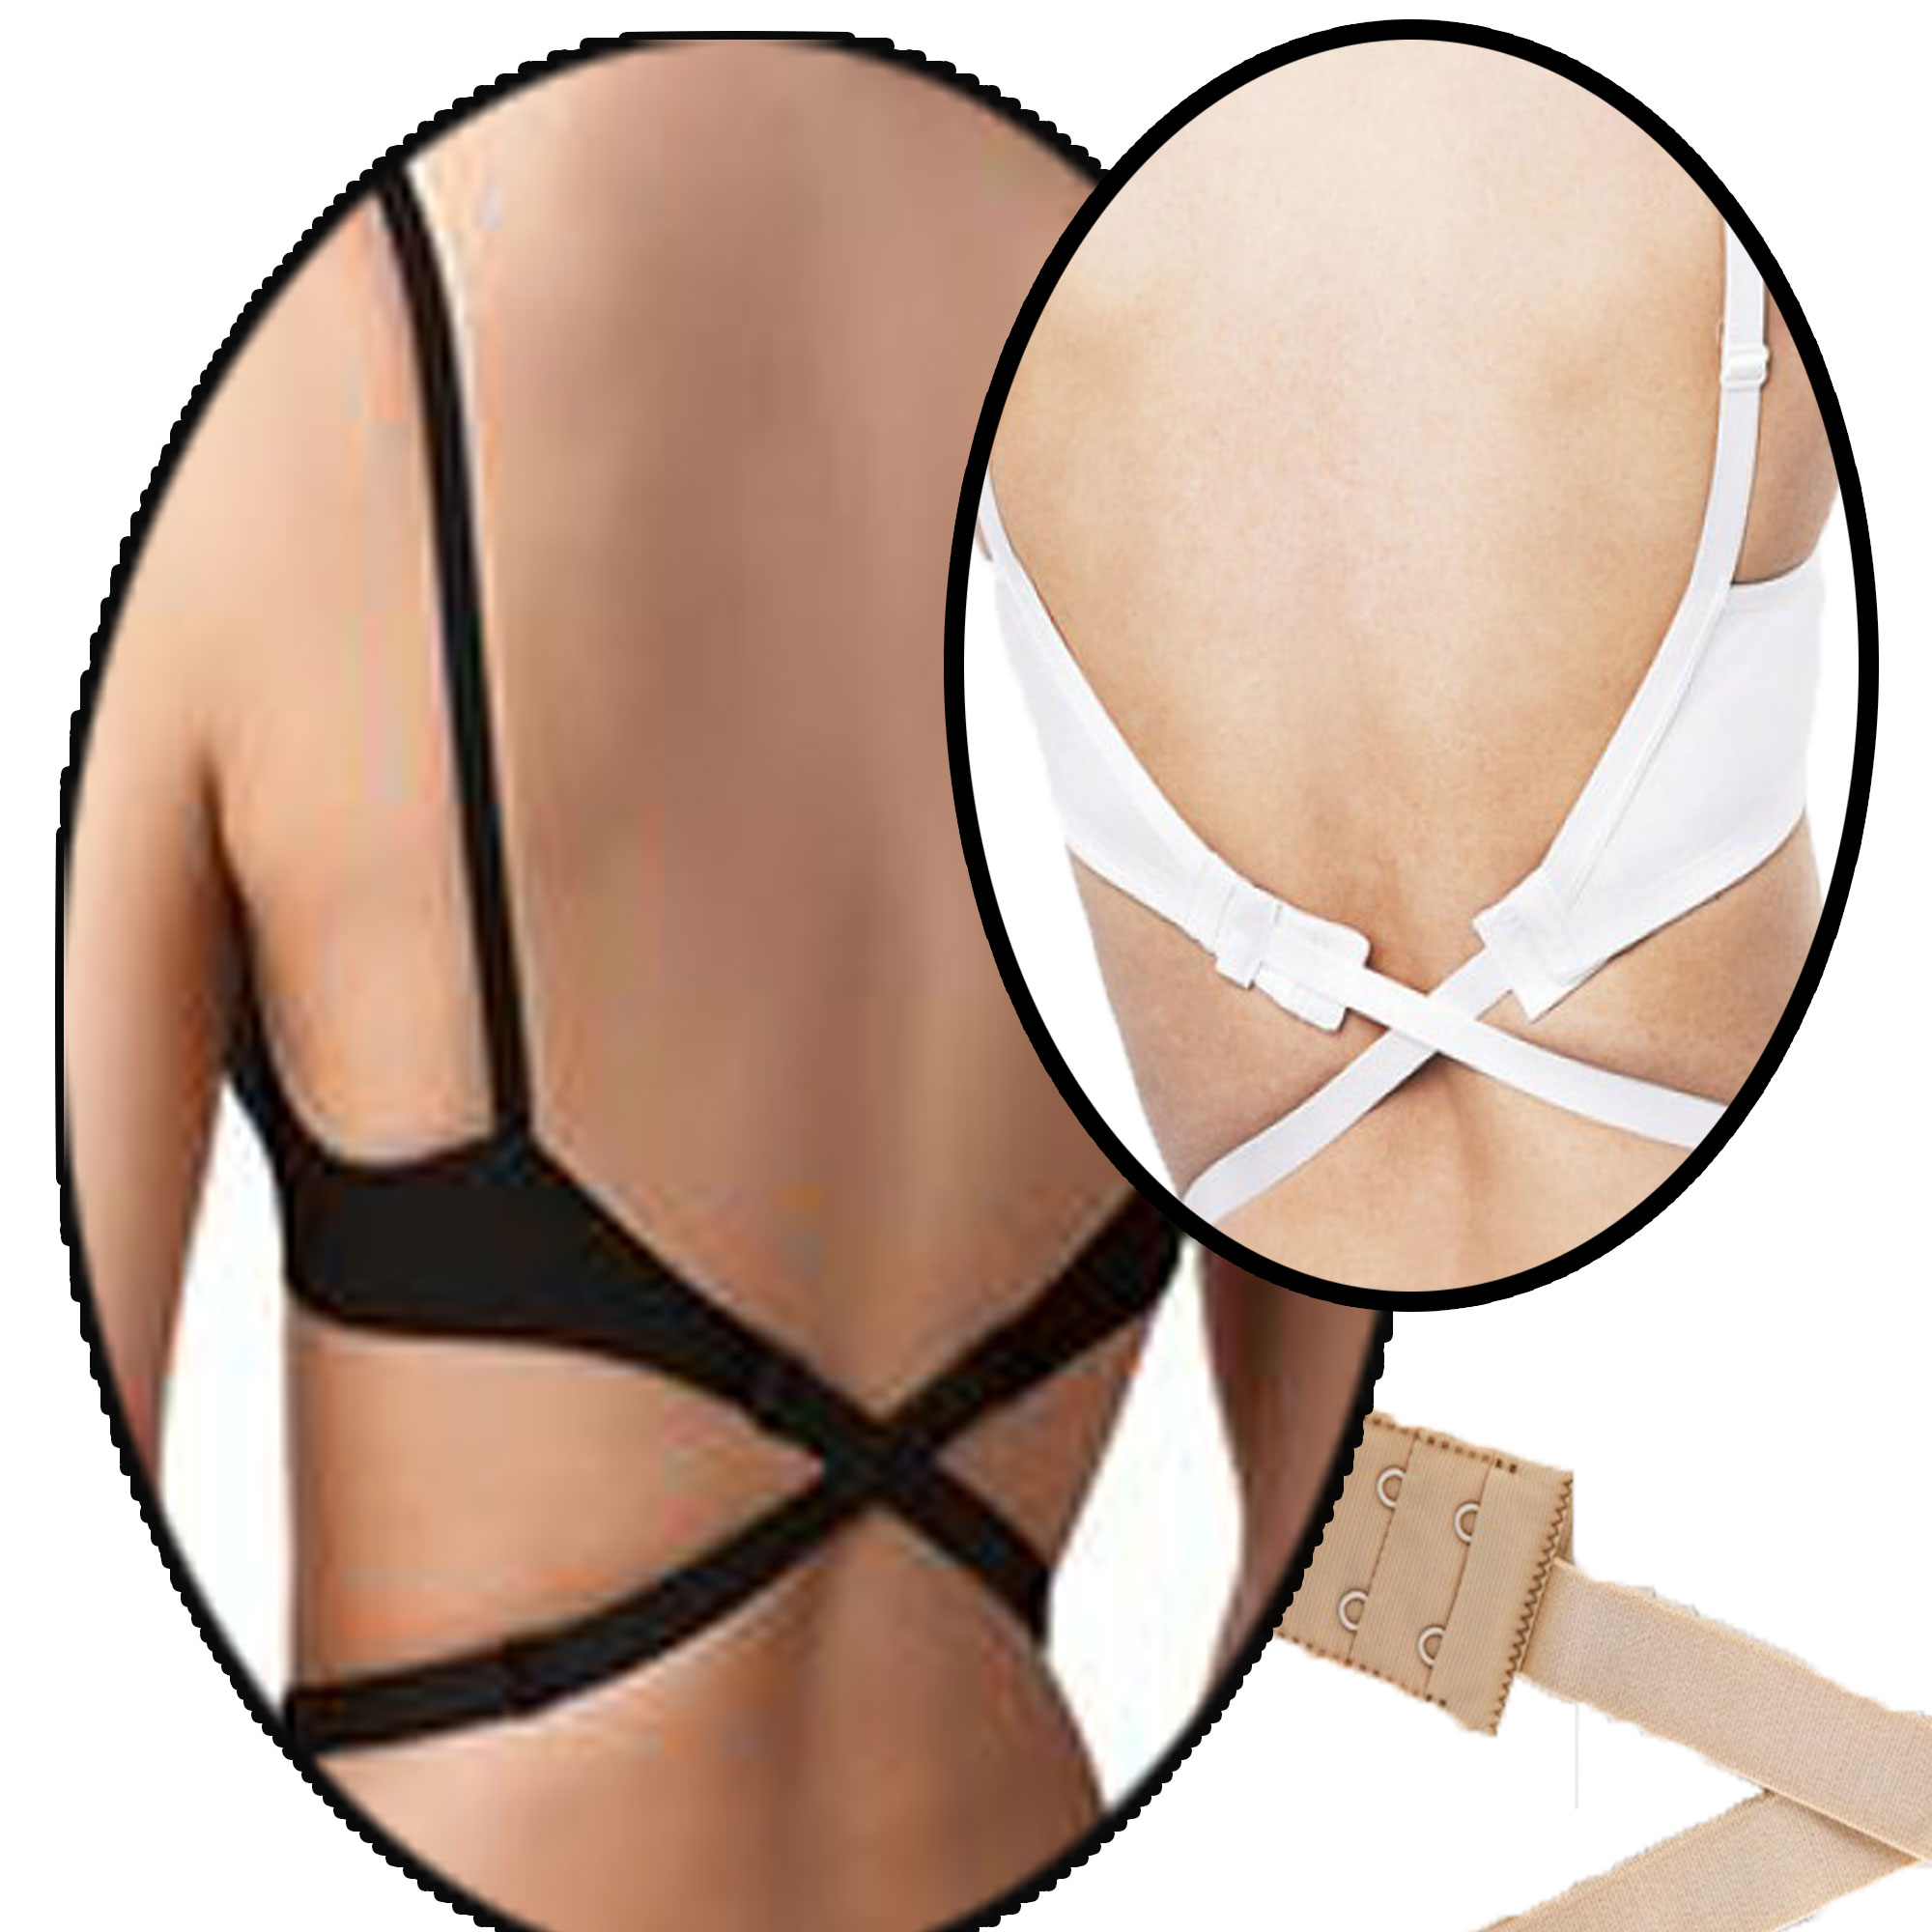 085f6cf430d2d BACKLESS LOW BACK BRA STRAP CONVERTER EXTENDER WHITE BLACK or NUDE or PACK  OF 3